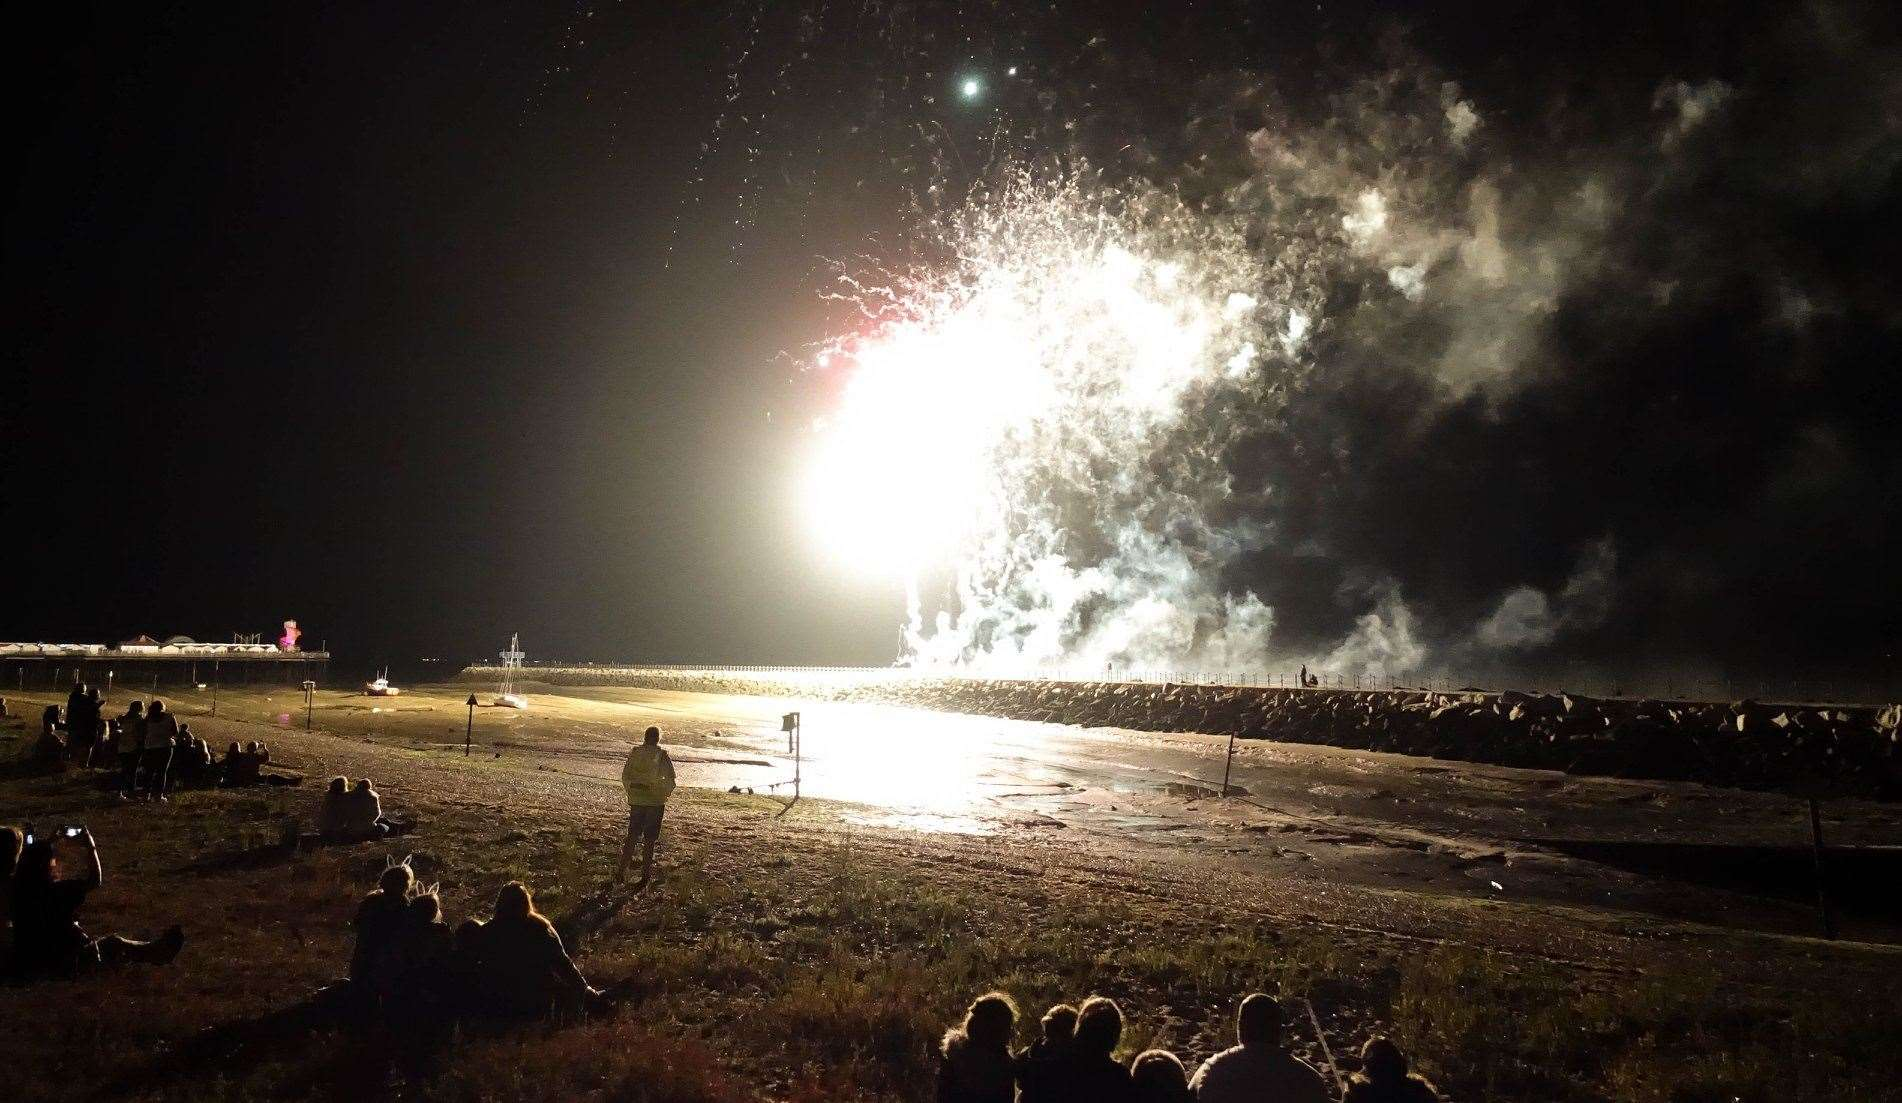 A previous fireworks display on the beach at Herne Bay Pic: Adrian Bennett